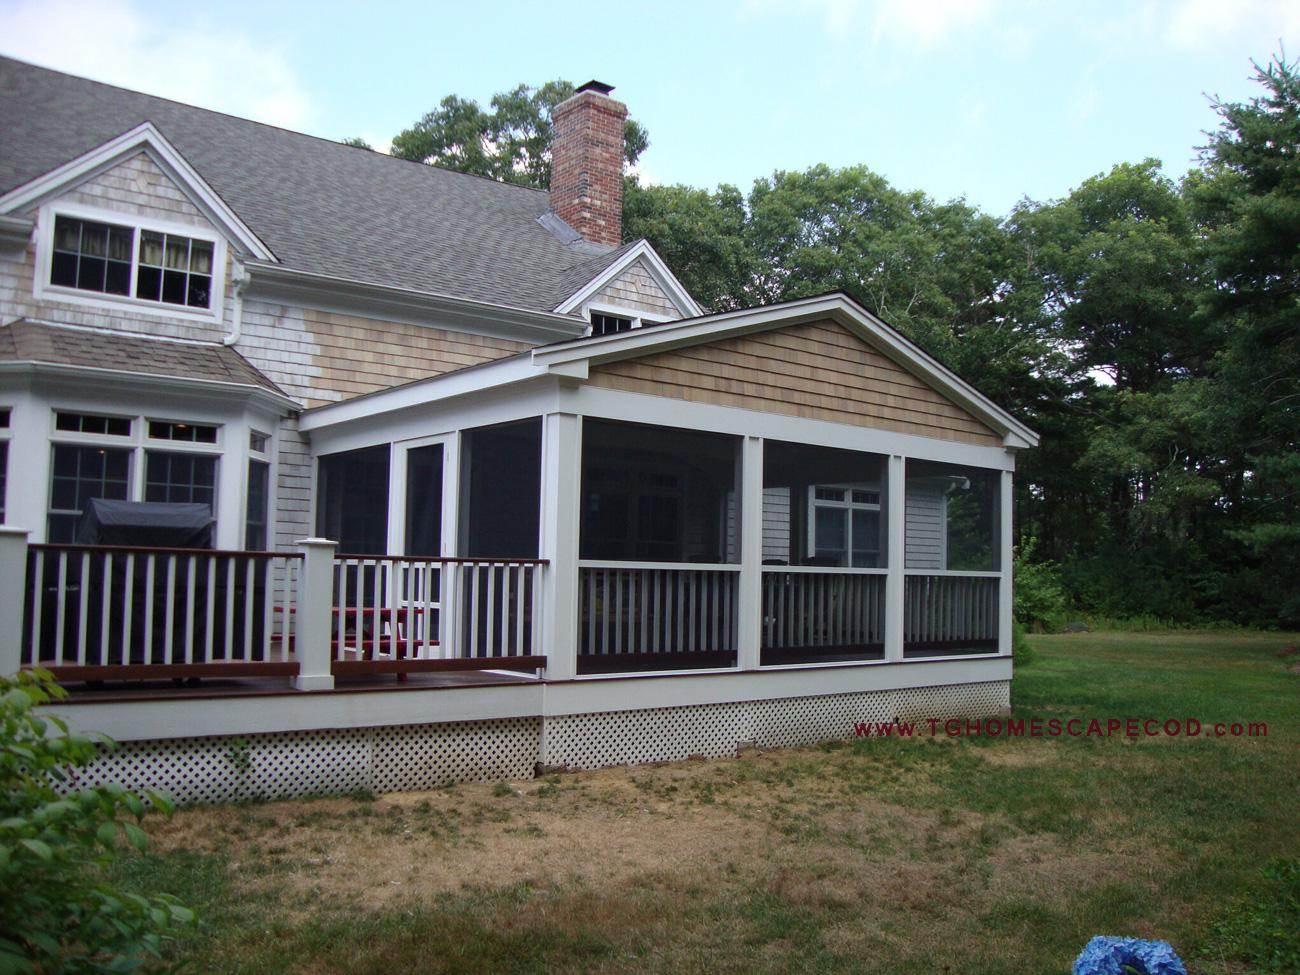 Cape cod additions cape cod home design build services for Additions to cape cod style homes